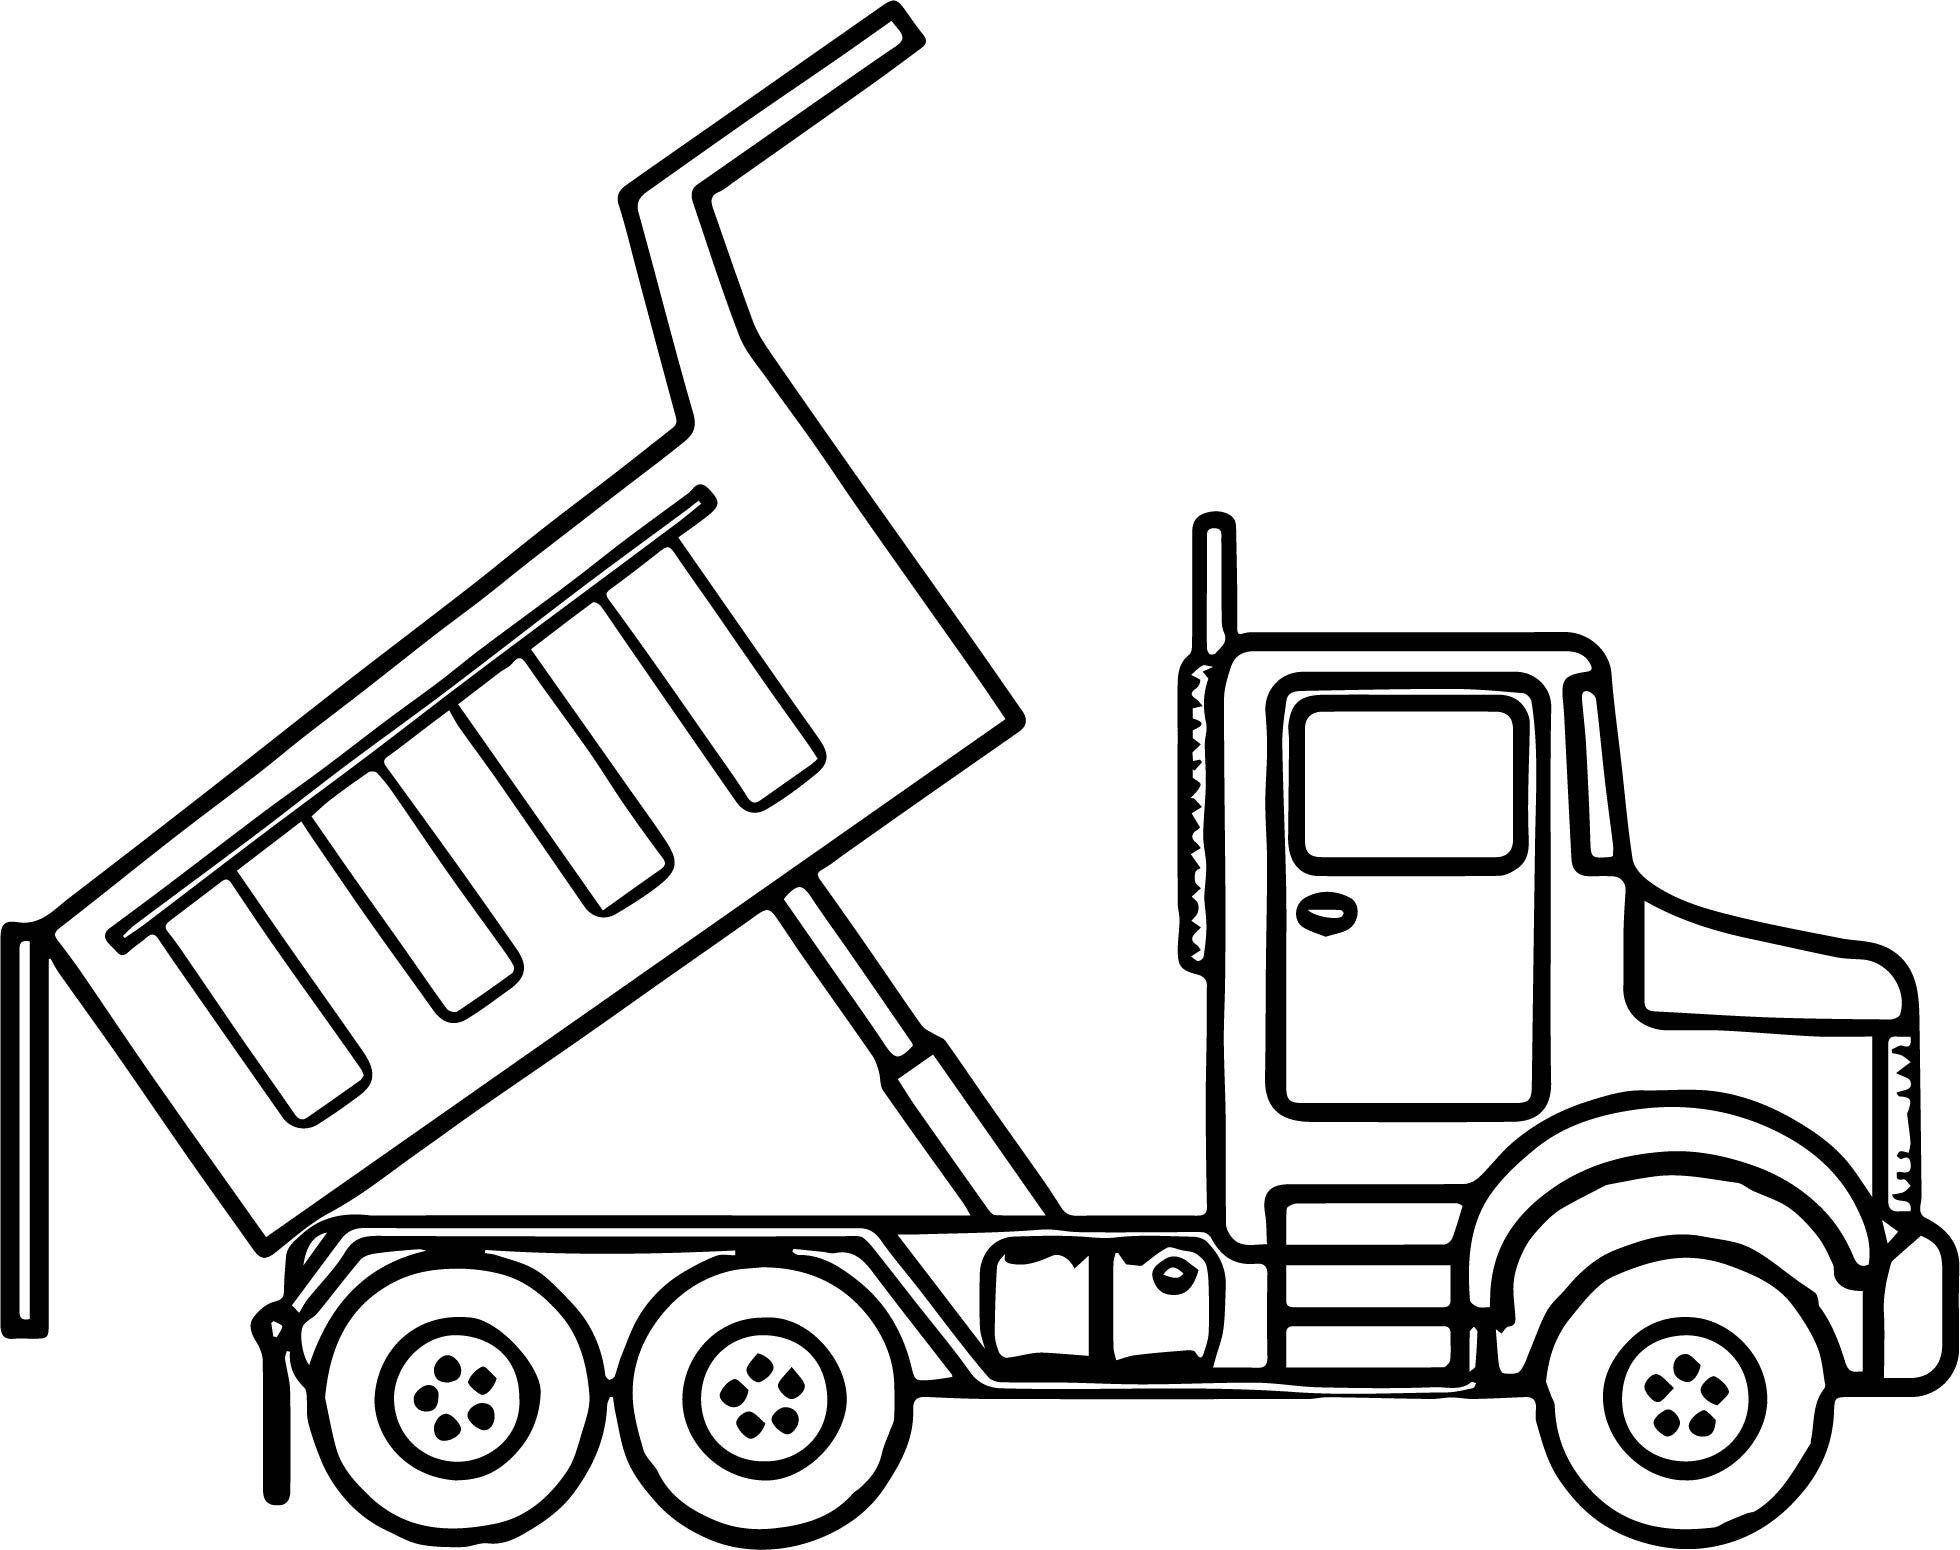 Semi Truck Coloring Pages Inspirational Truck Coloring Pages Truck Coloring Pages Coloring Books Coloring Pages